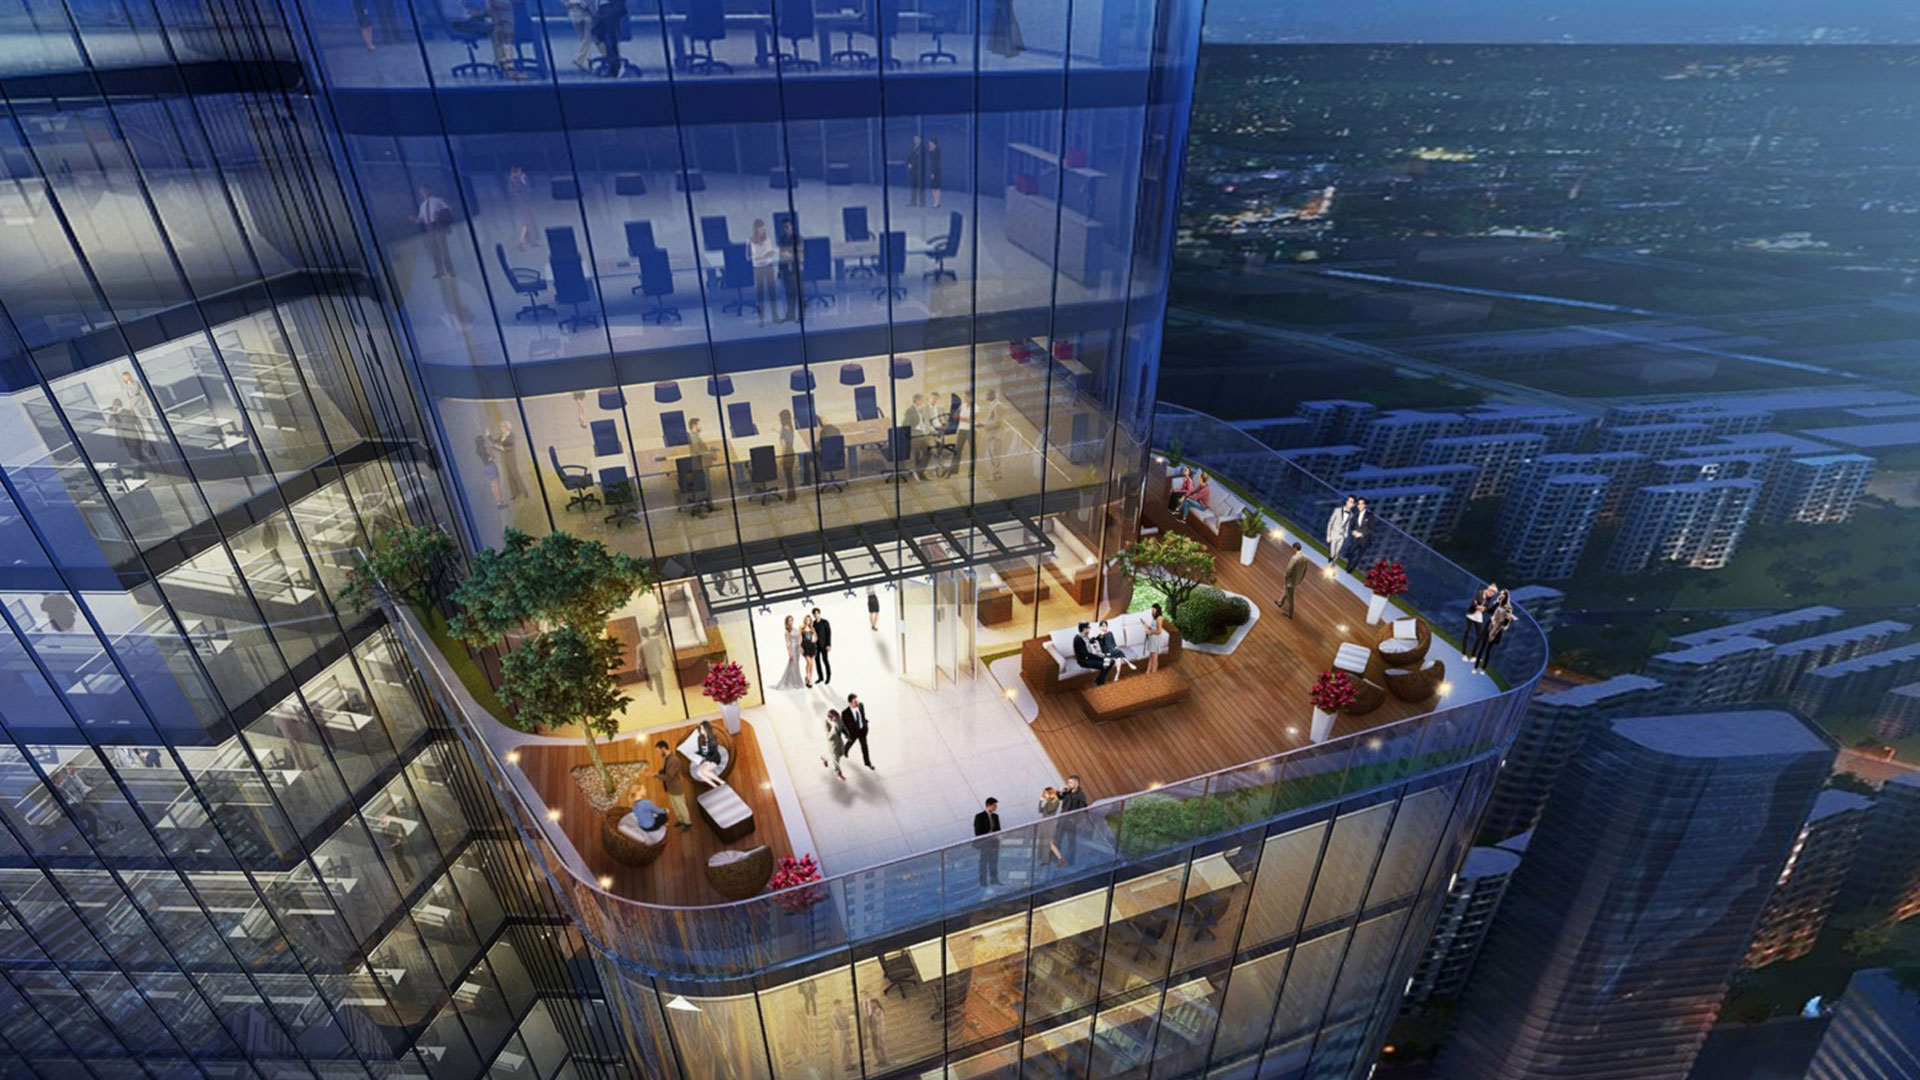 ASYA-Design-Projects_Proposed-Office-Development-1920